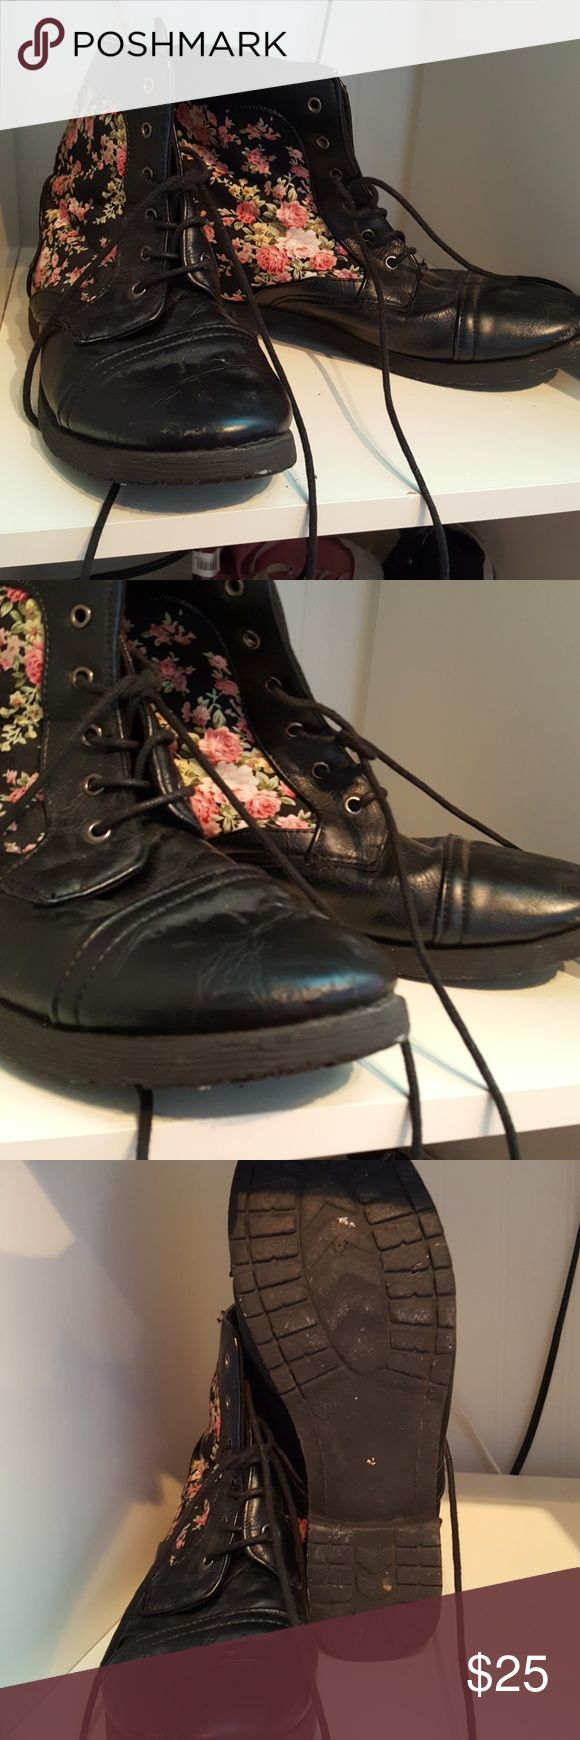 Floral combat boots Floral combat boots from Hot Topic, lightly worn, slight scuff marks on the toes, they're not smelly! Made of faux leather. Size says 10 but they fit like a 9. Hot Topic Shoes Combat & Moto Boots